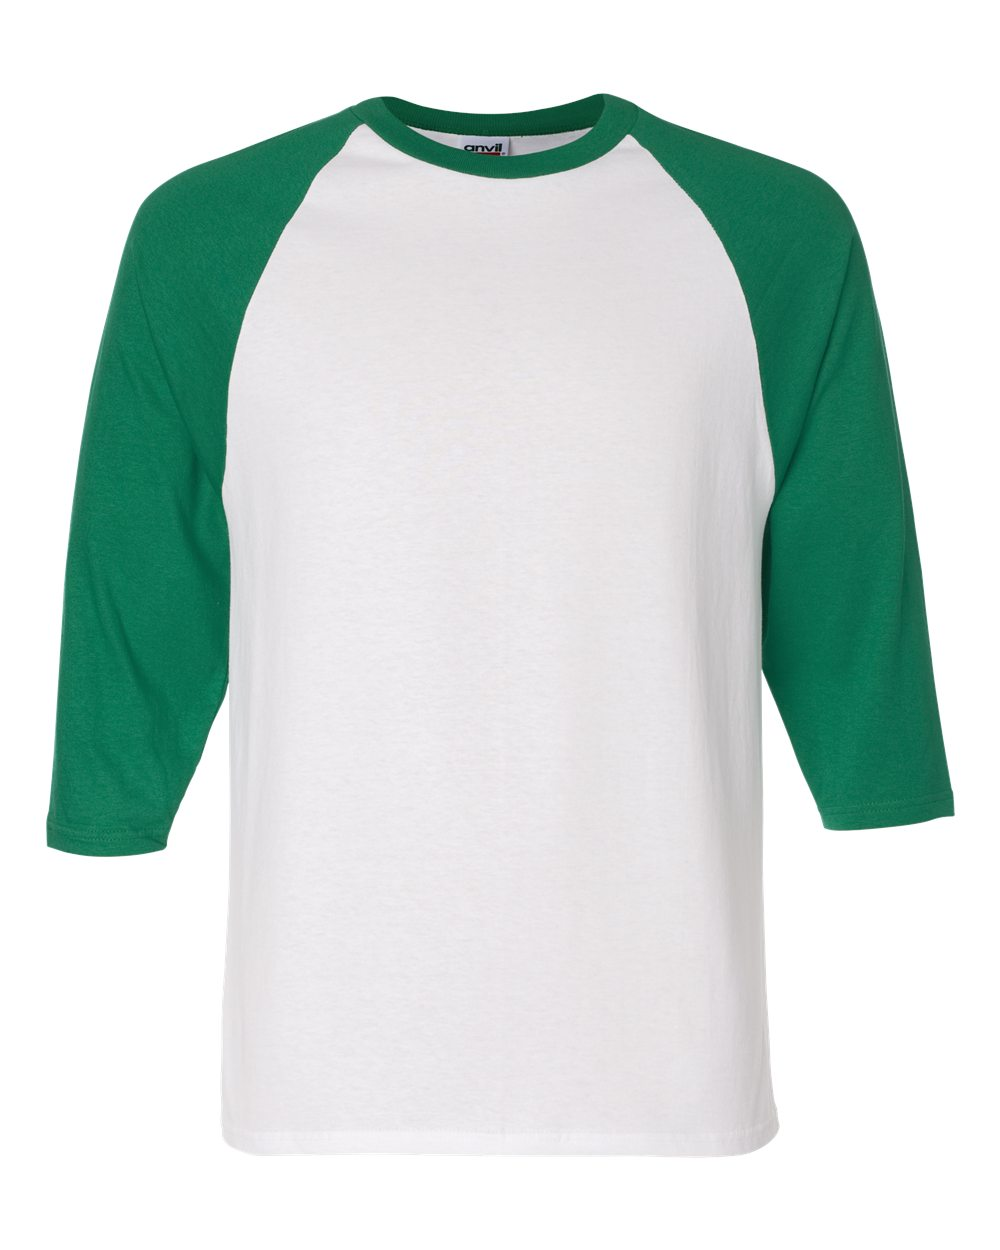 Blank baseball tee template clipart best for Blank baseball jersey t shirts